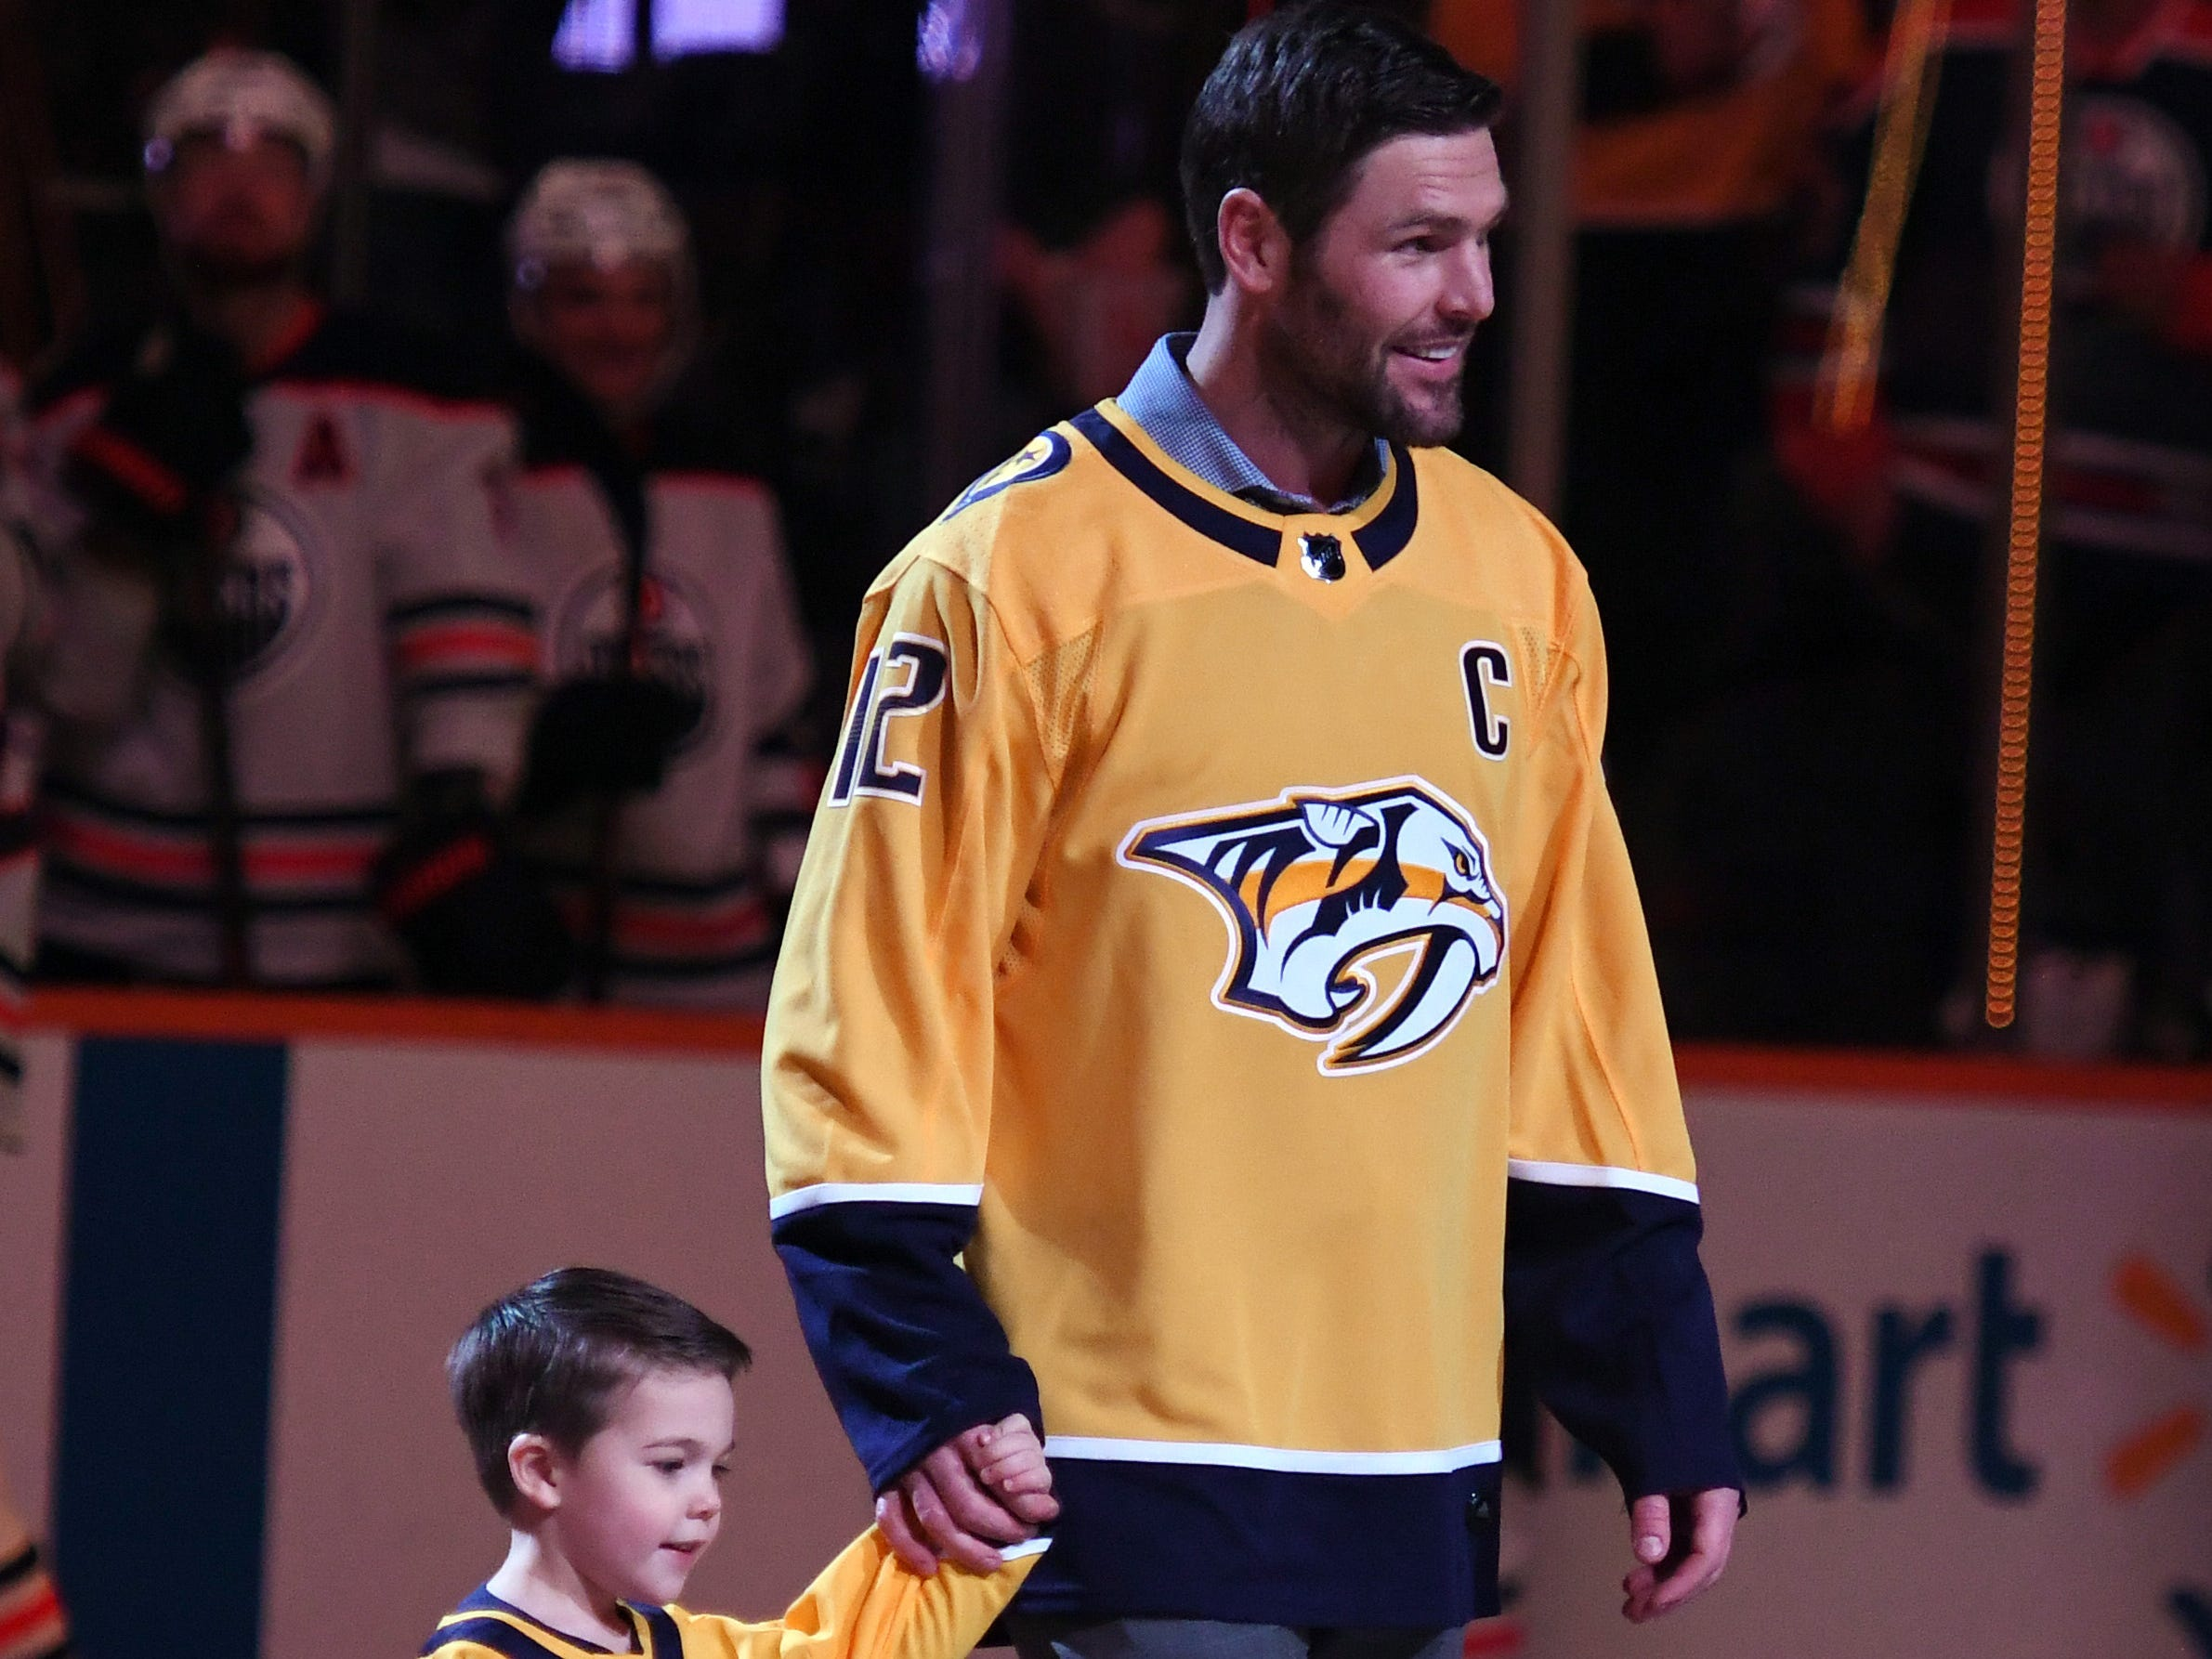 Former Nashville Predators captain Mike FIsher (right) is joined by his son Isaiah Fisher (left) as he is honored prior to the game against the Edmonton Oilers at Bridgestone Arena.